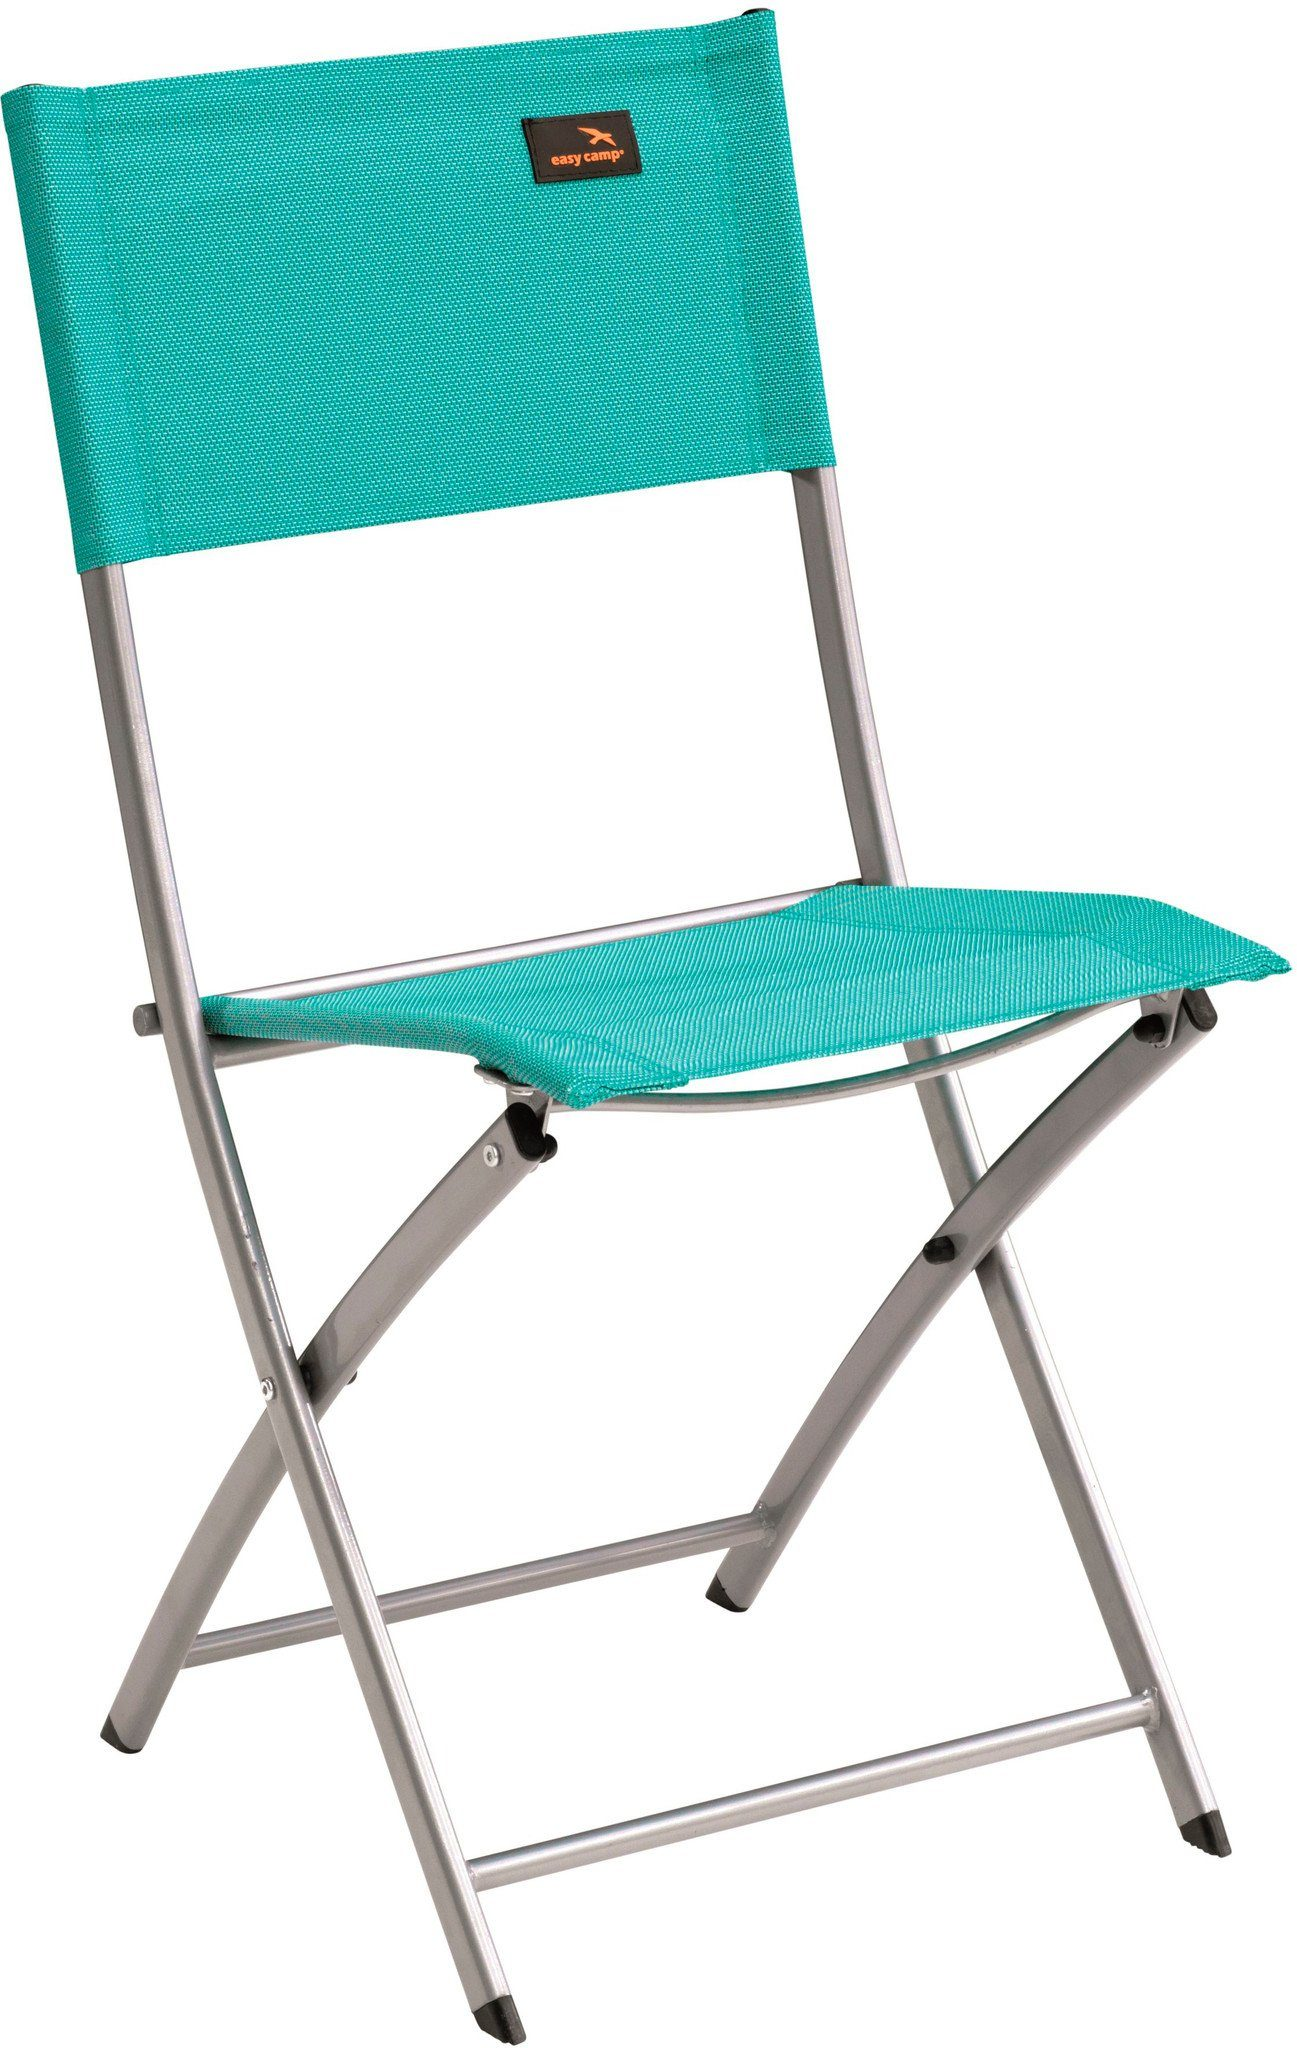 Easy Camp Camping-Stuhl »Coca Chair«